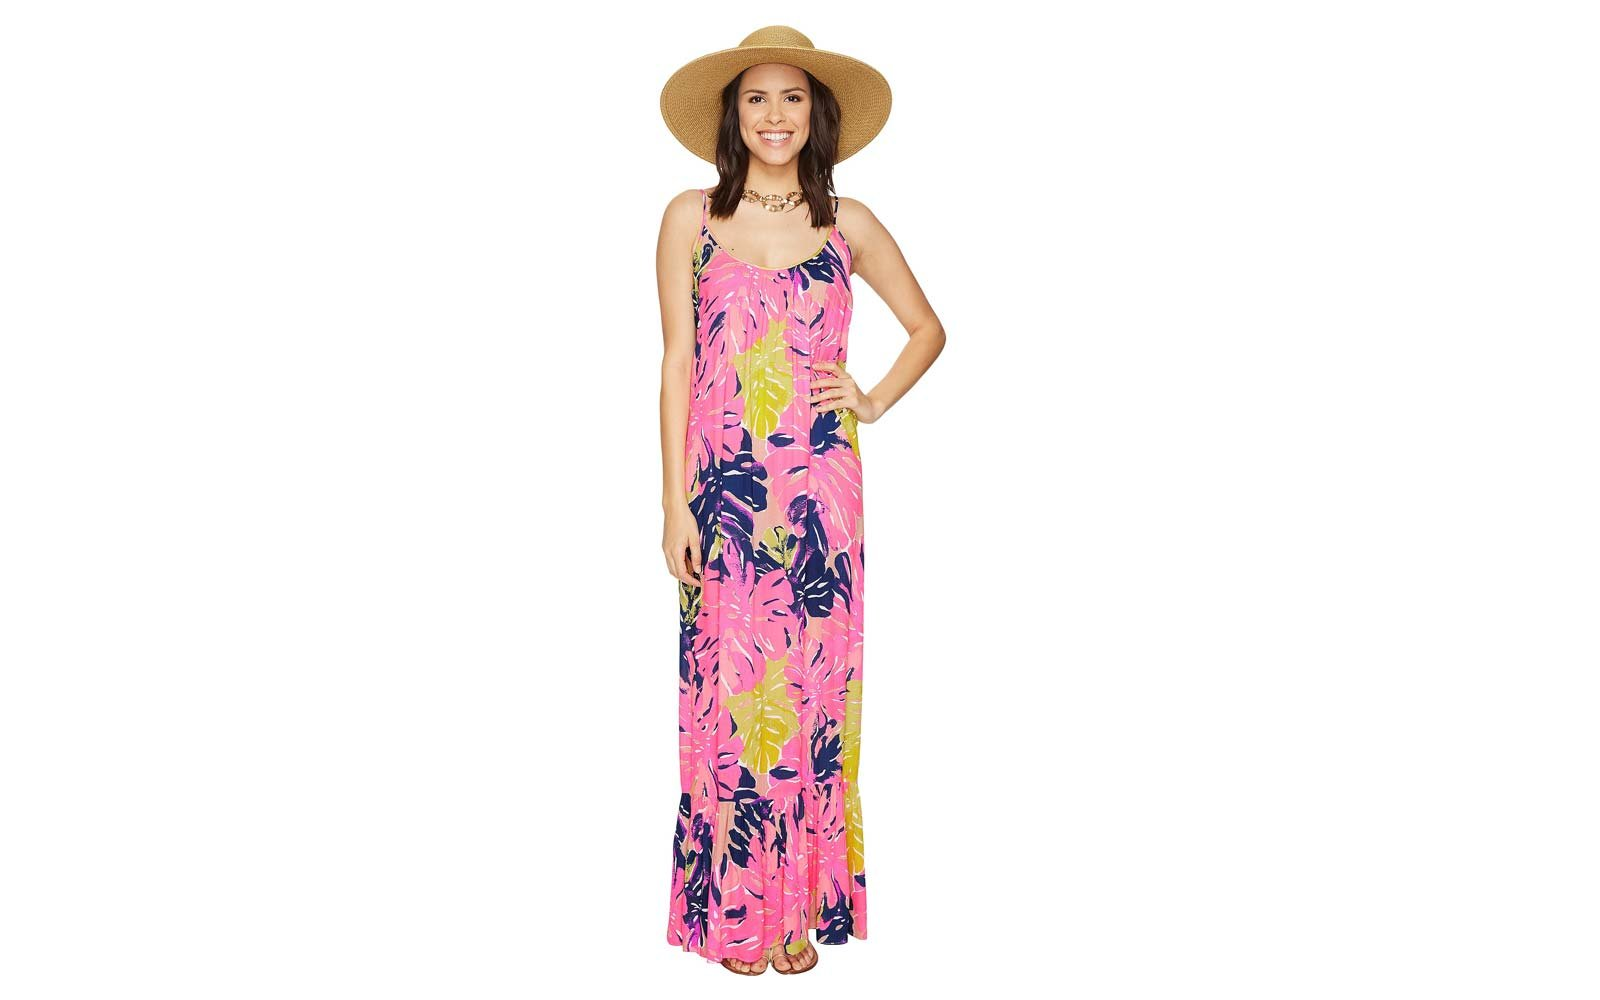 Lily Pulitzer maxi dress